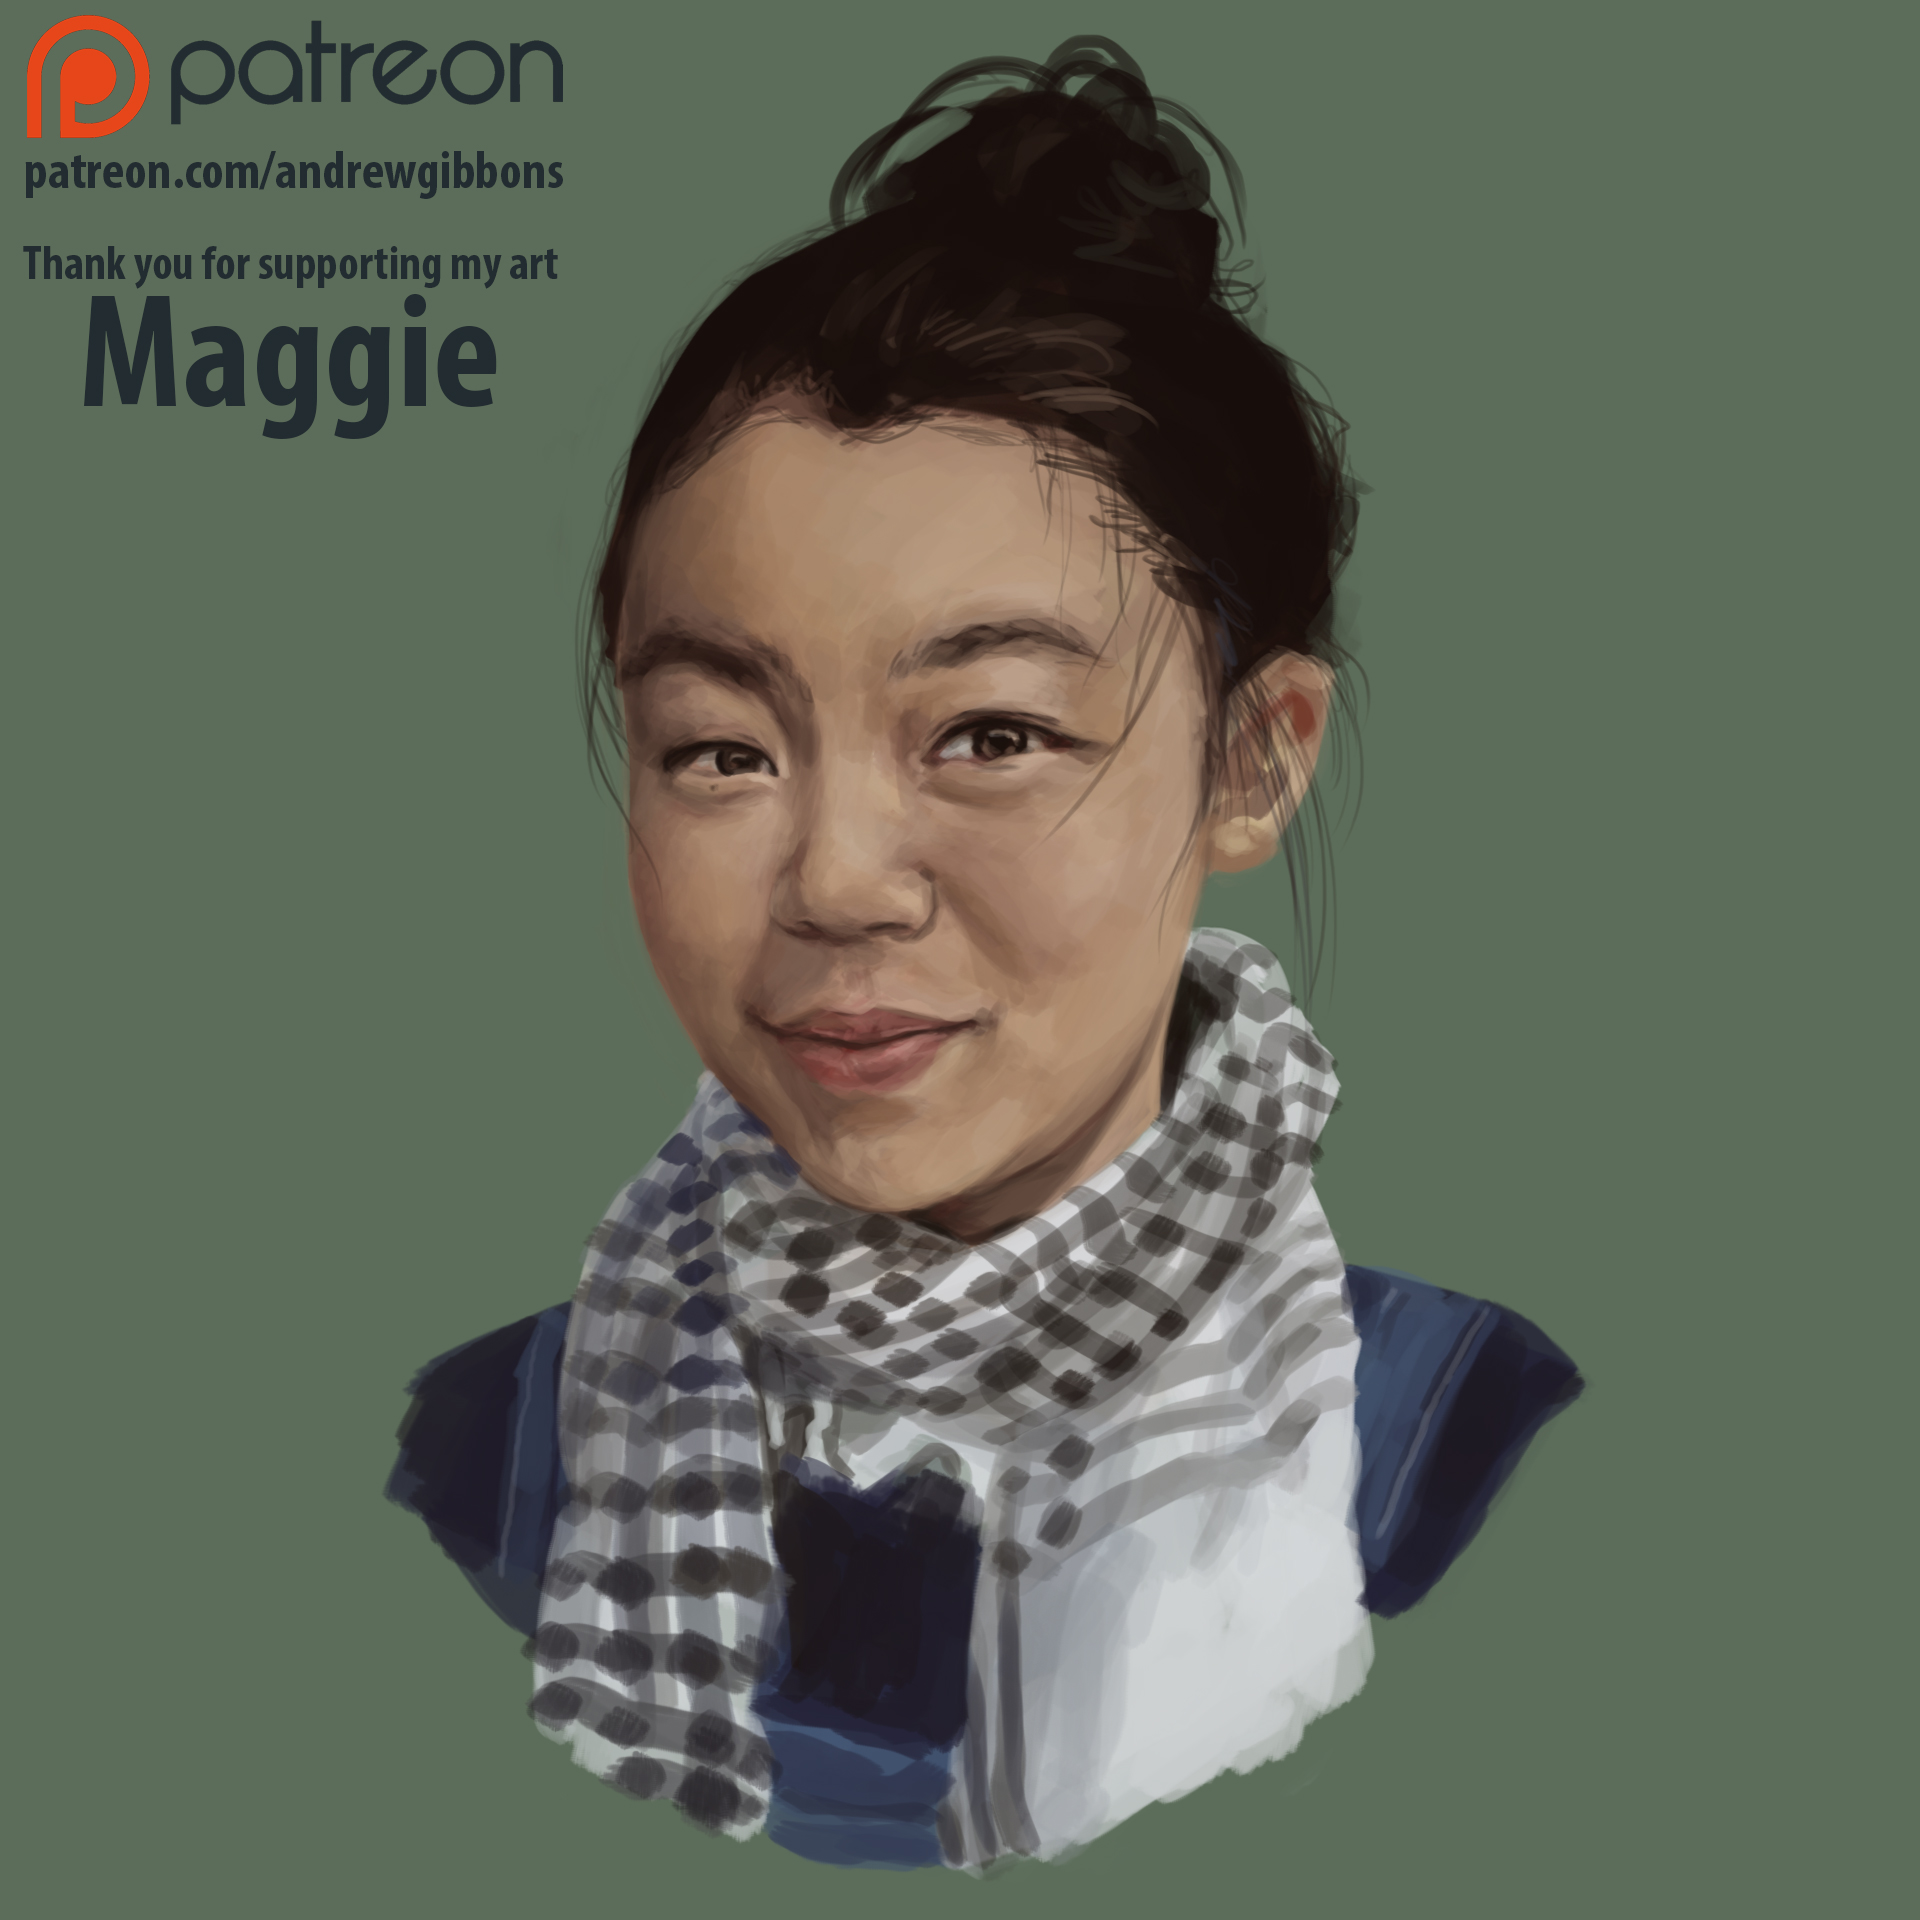 [Image: patron_portrait___maggie_by_andrew_gibbons-dbg6ecj.jpg]